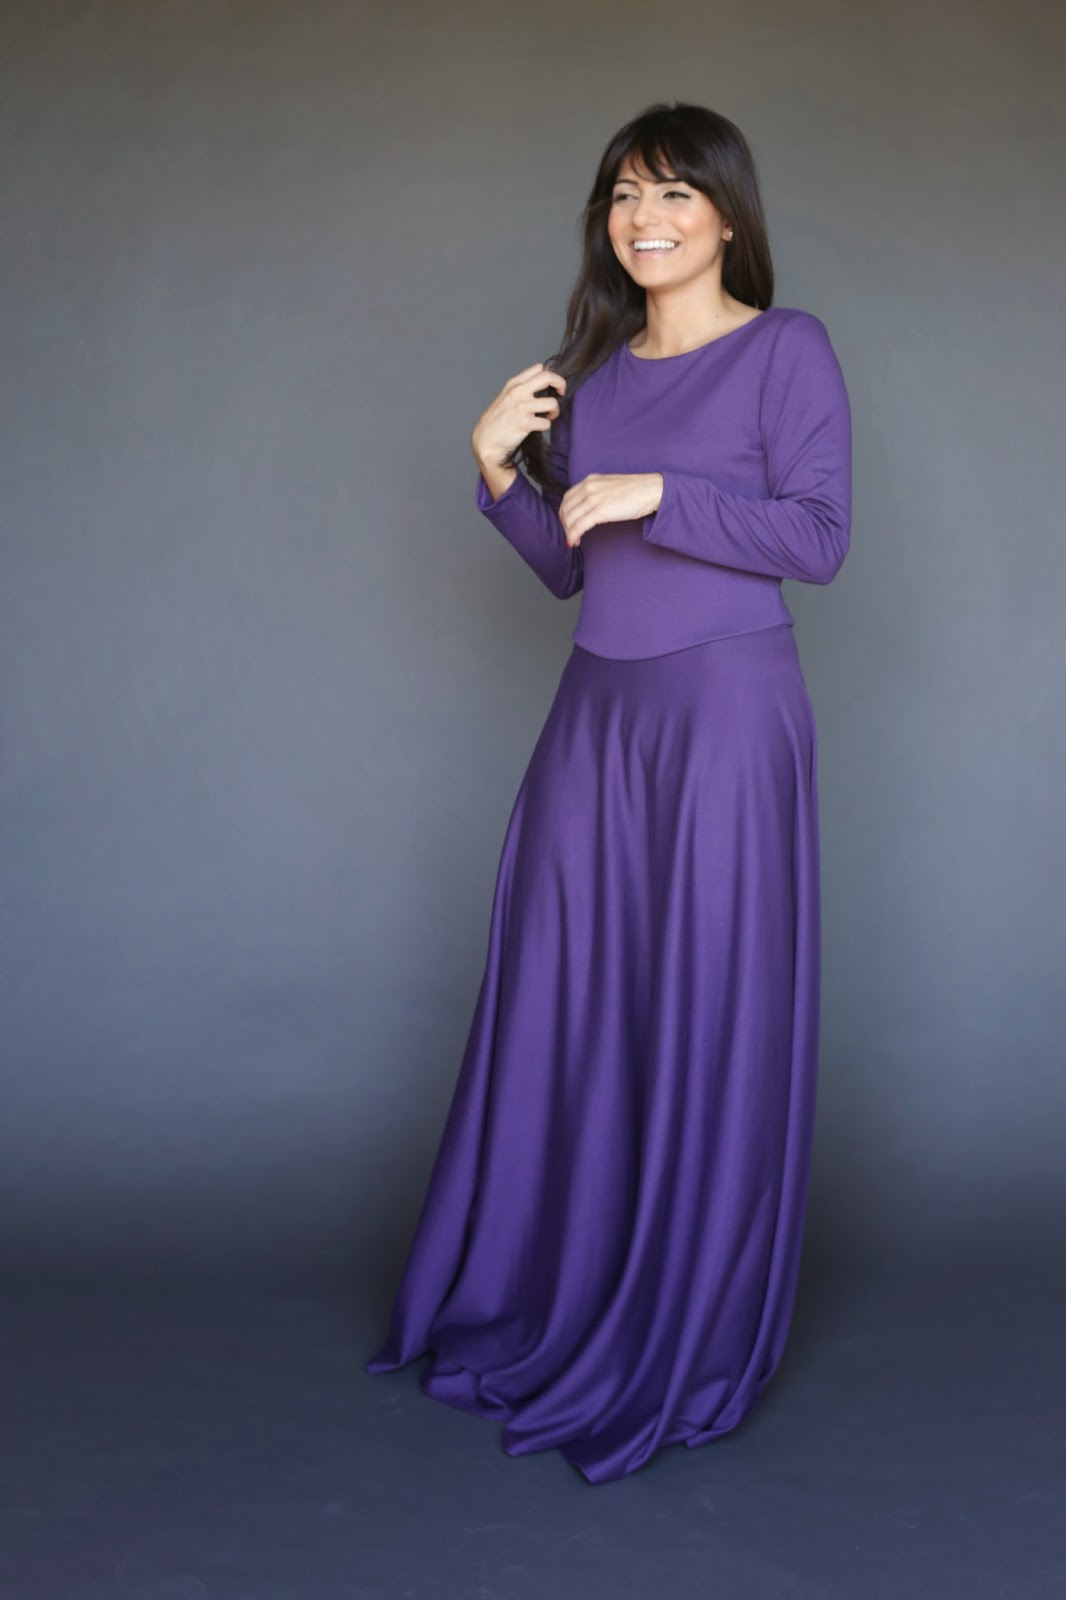 royal purple long sleeve modest maxi dress with full skirt full length formal dress hijab tznius mormon mission Mode-sty